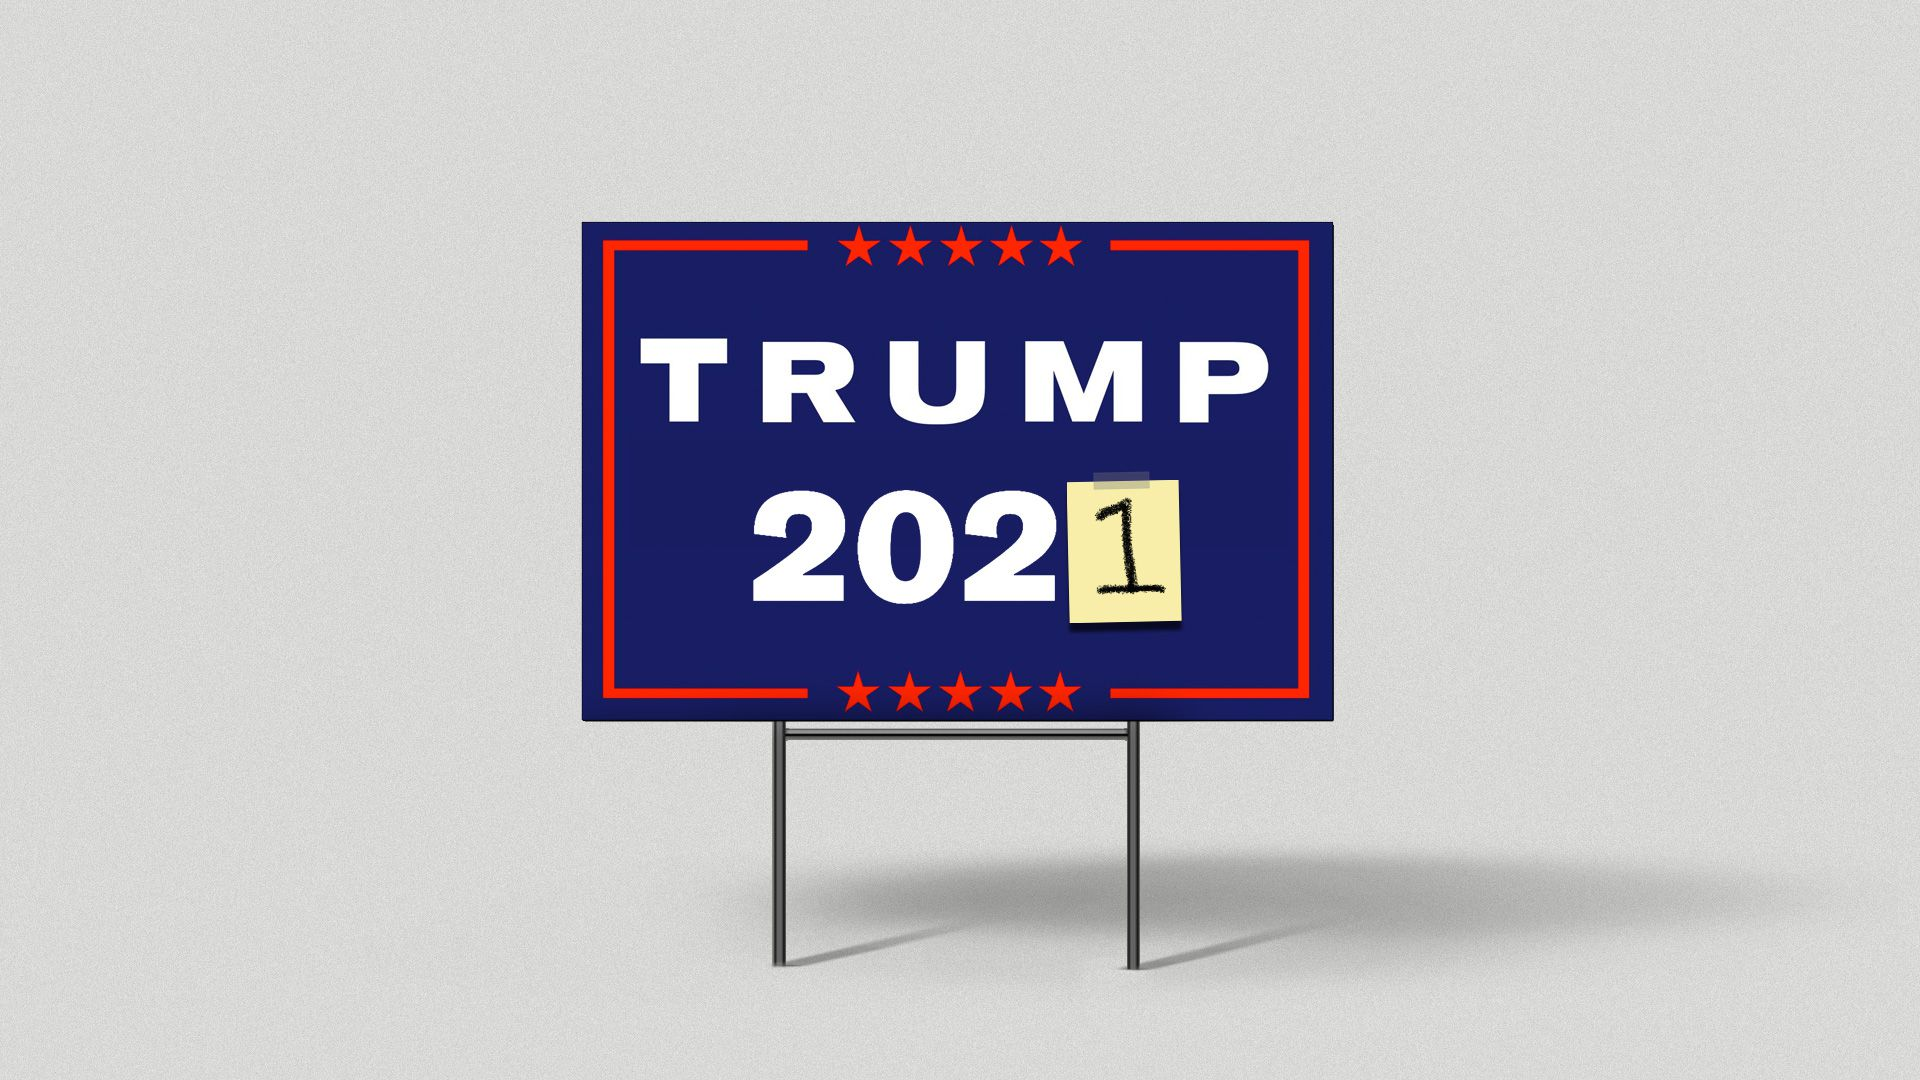 A Trump 2021 yard sign